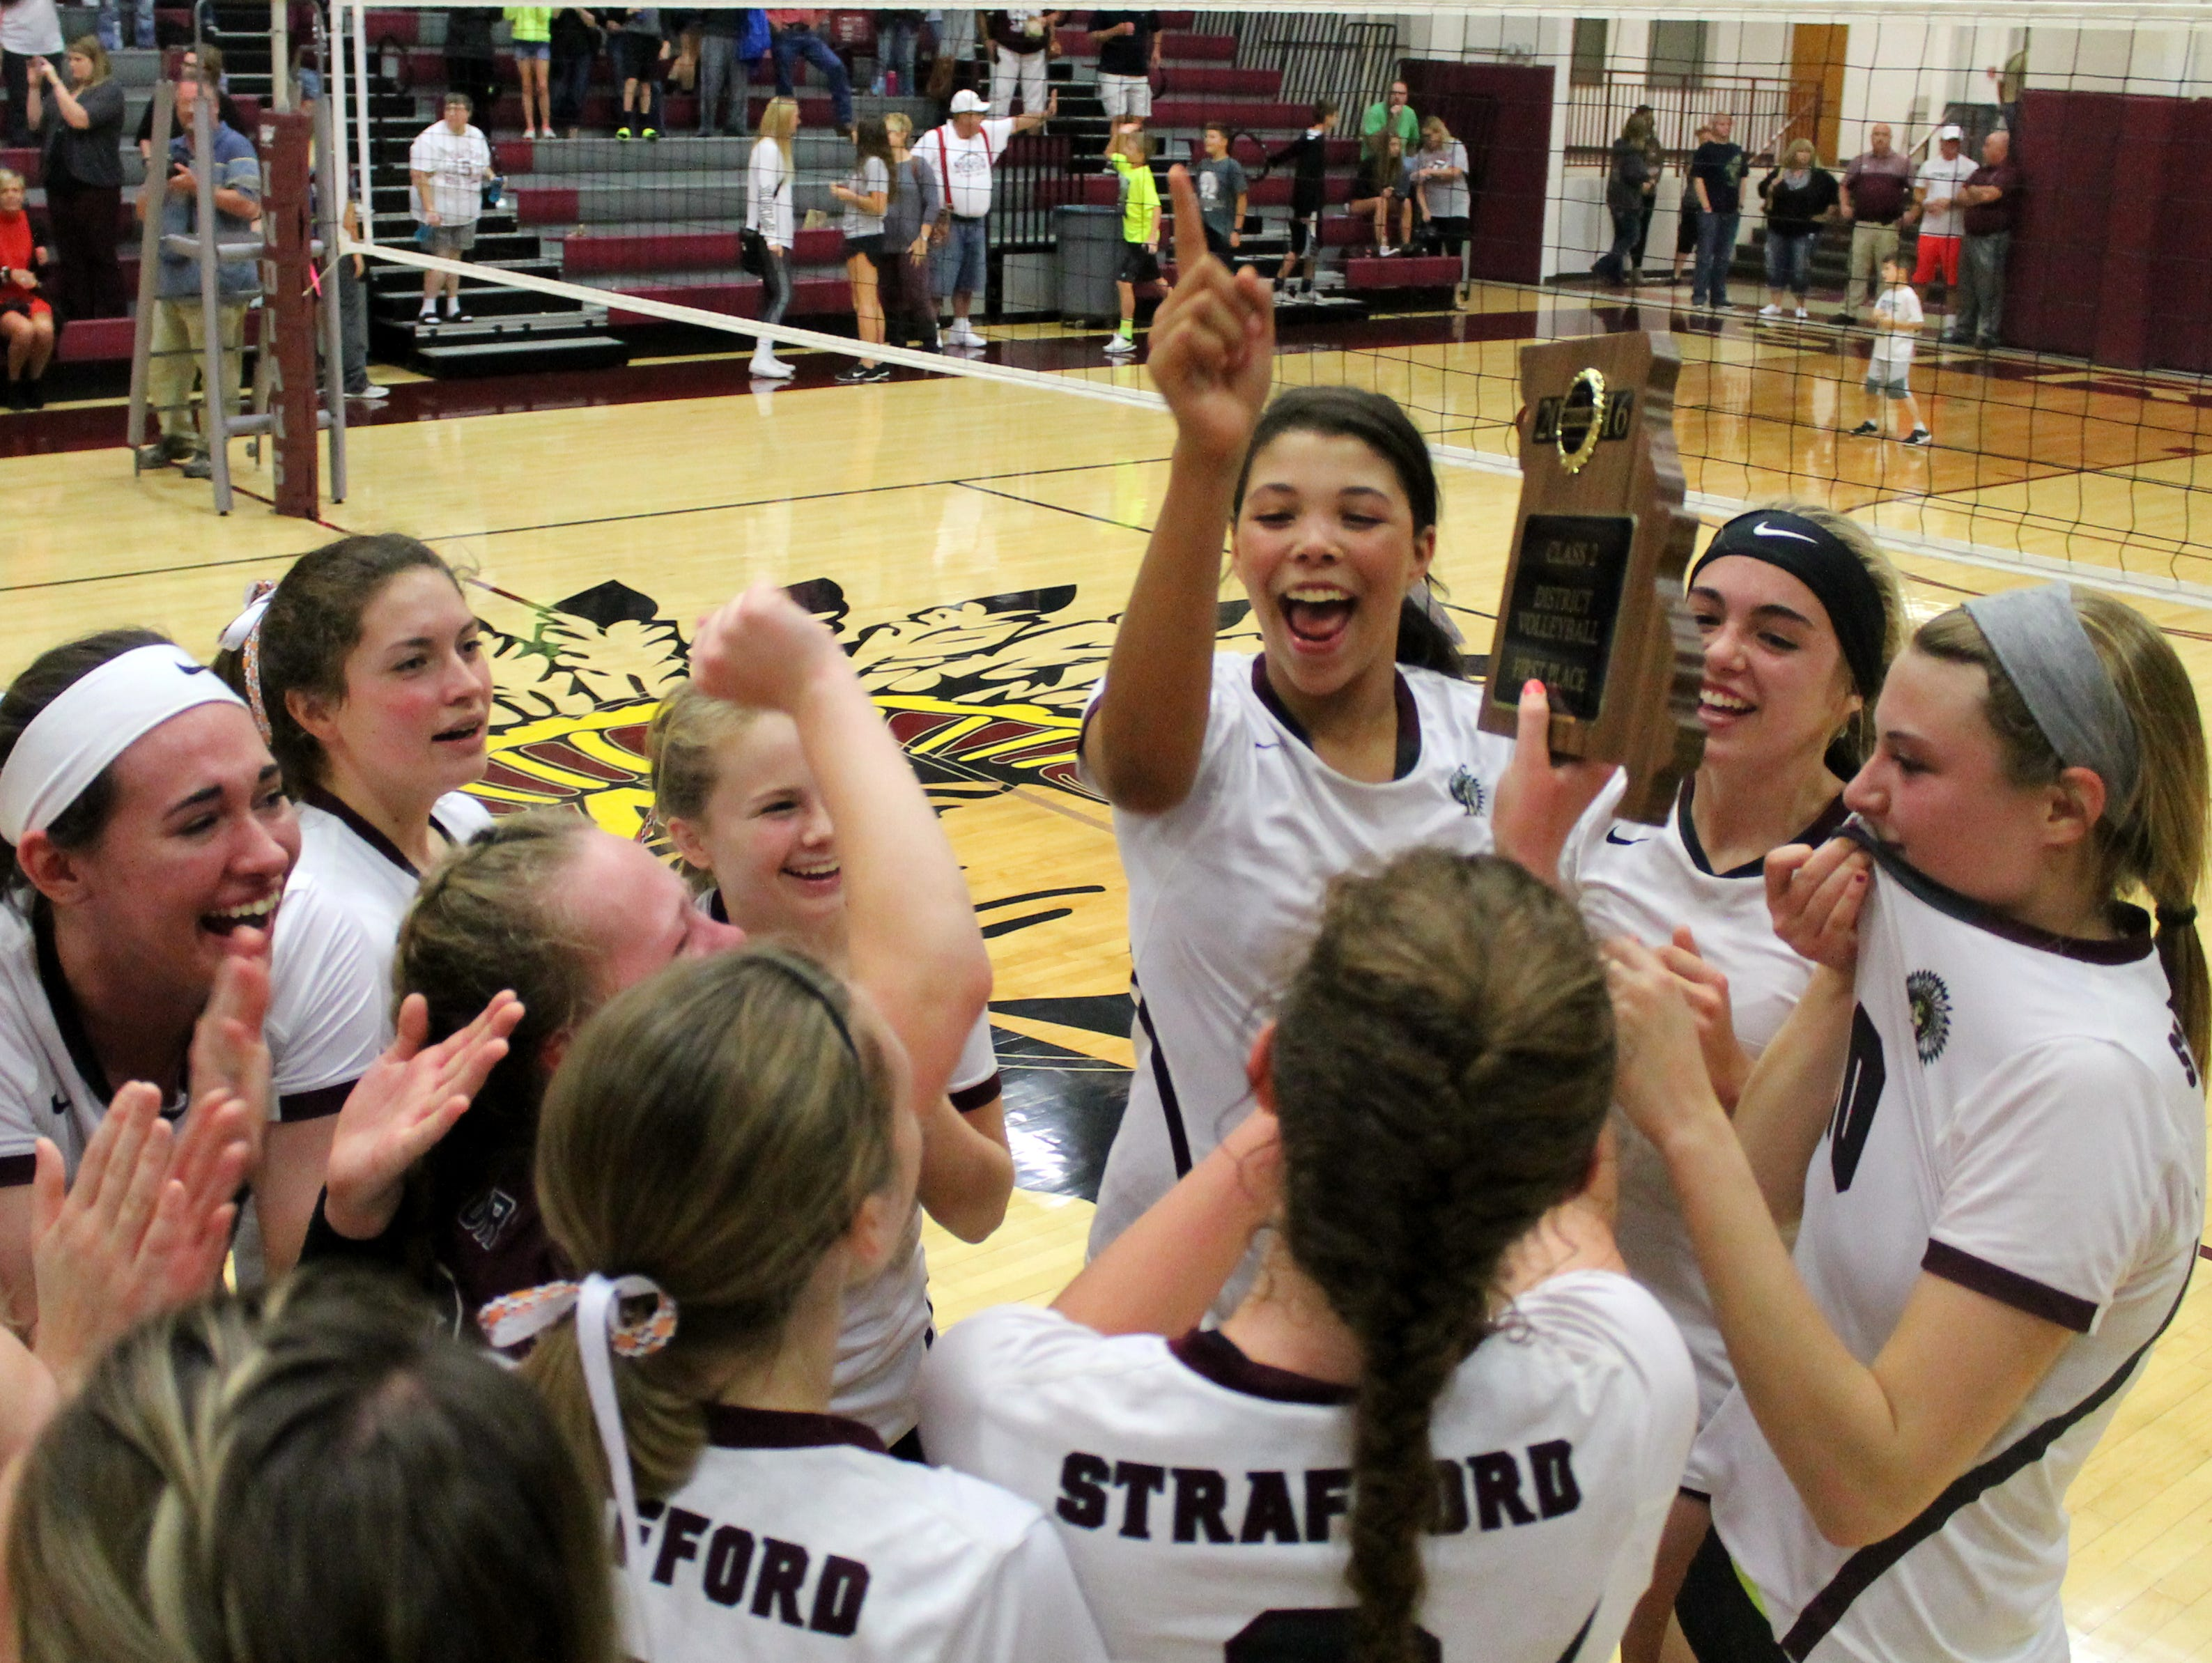 The Strafford High School volleyball team celebrates with the 2016 Class 2 District 12 championship trophy.